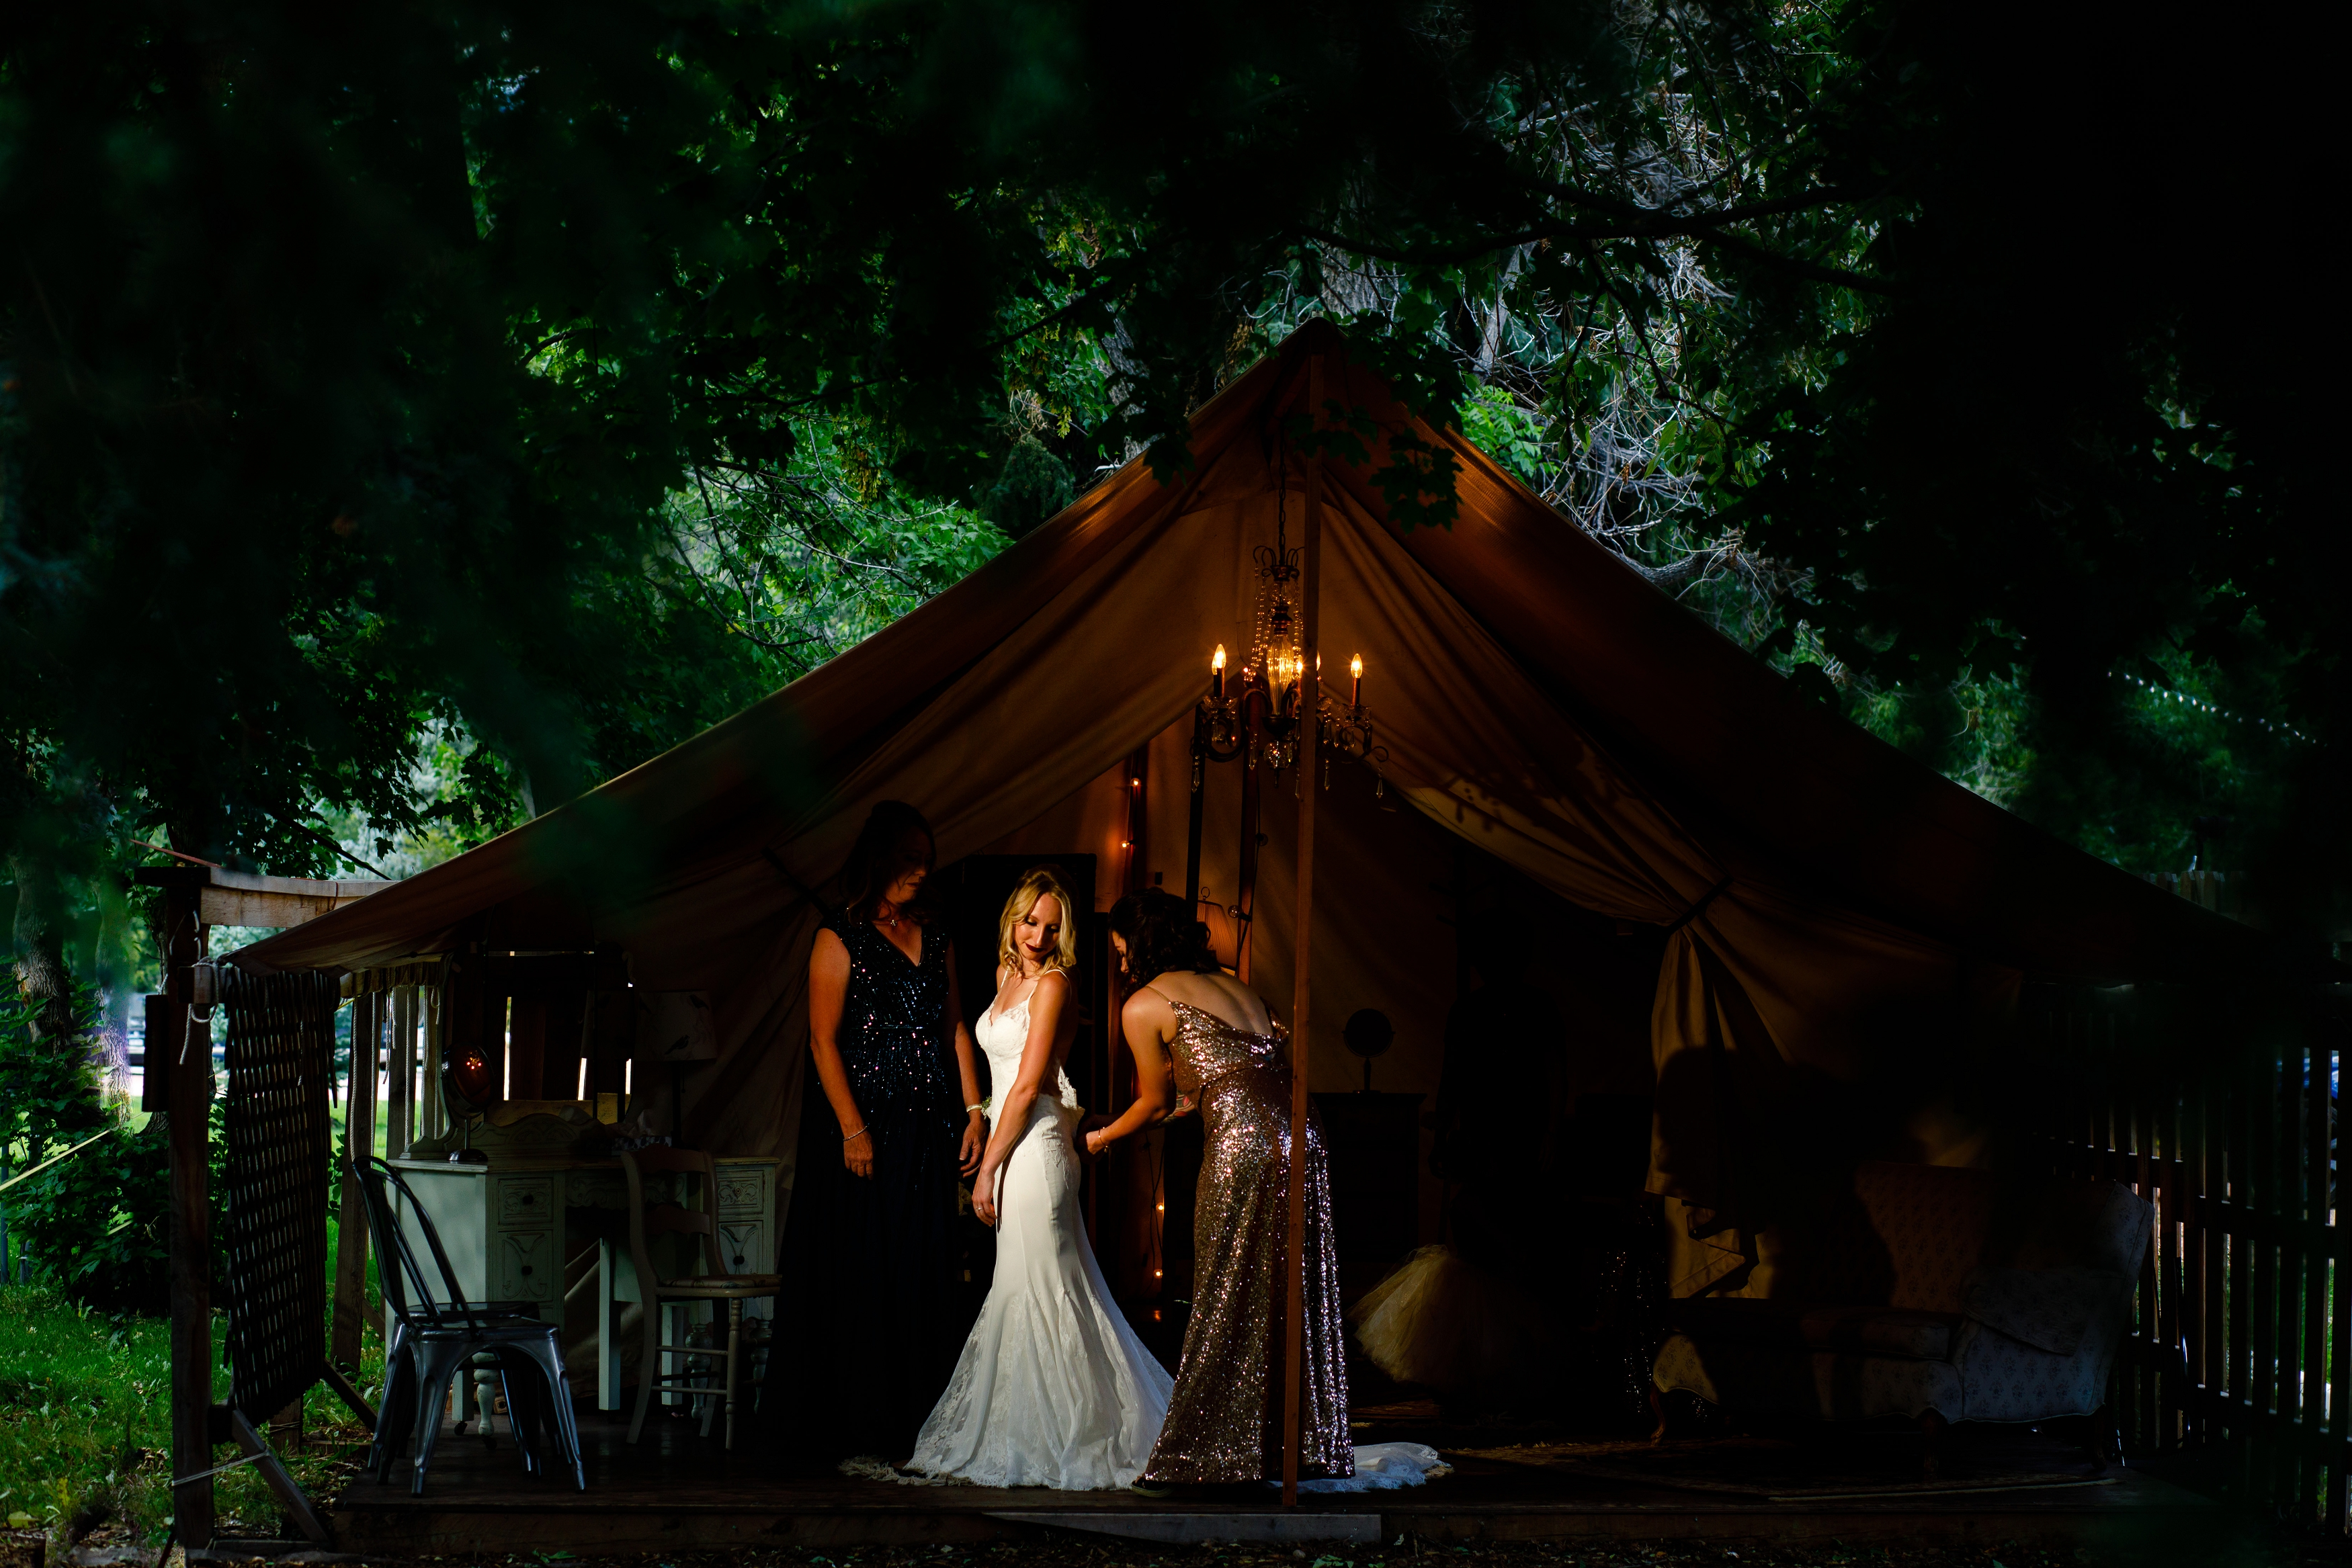 Bride getting ready in the tent at the River Bend venue in Lyons, CO